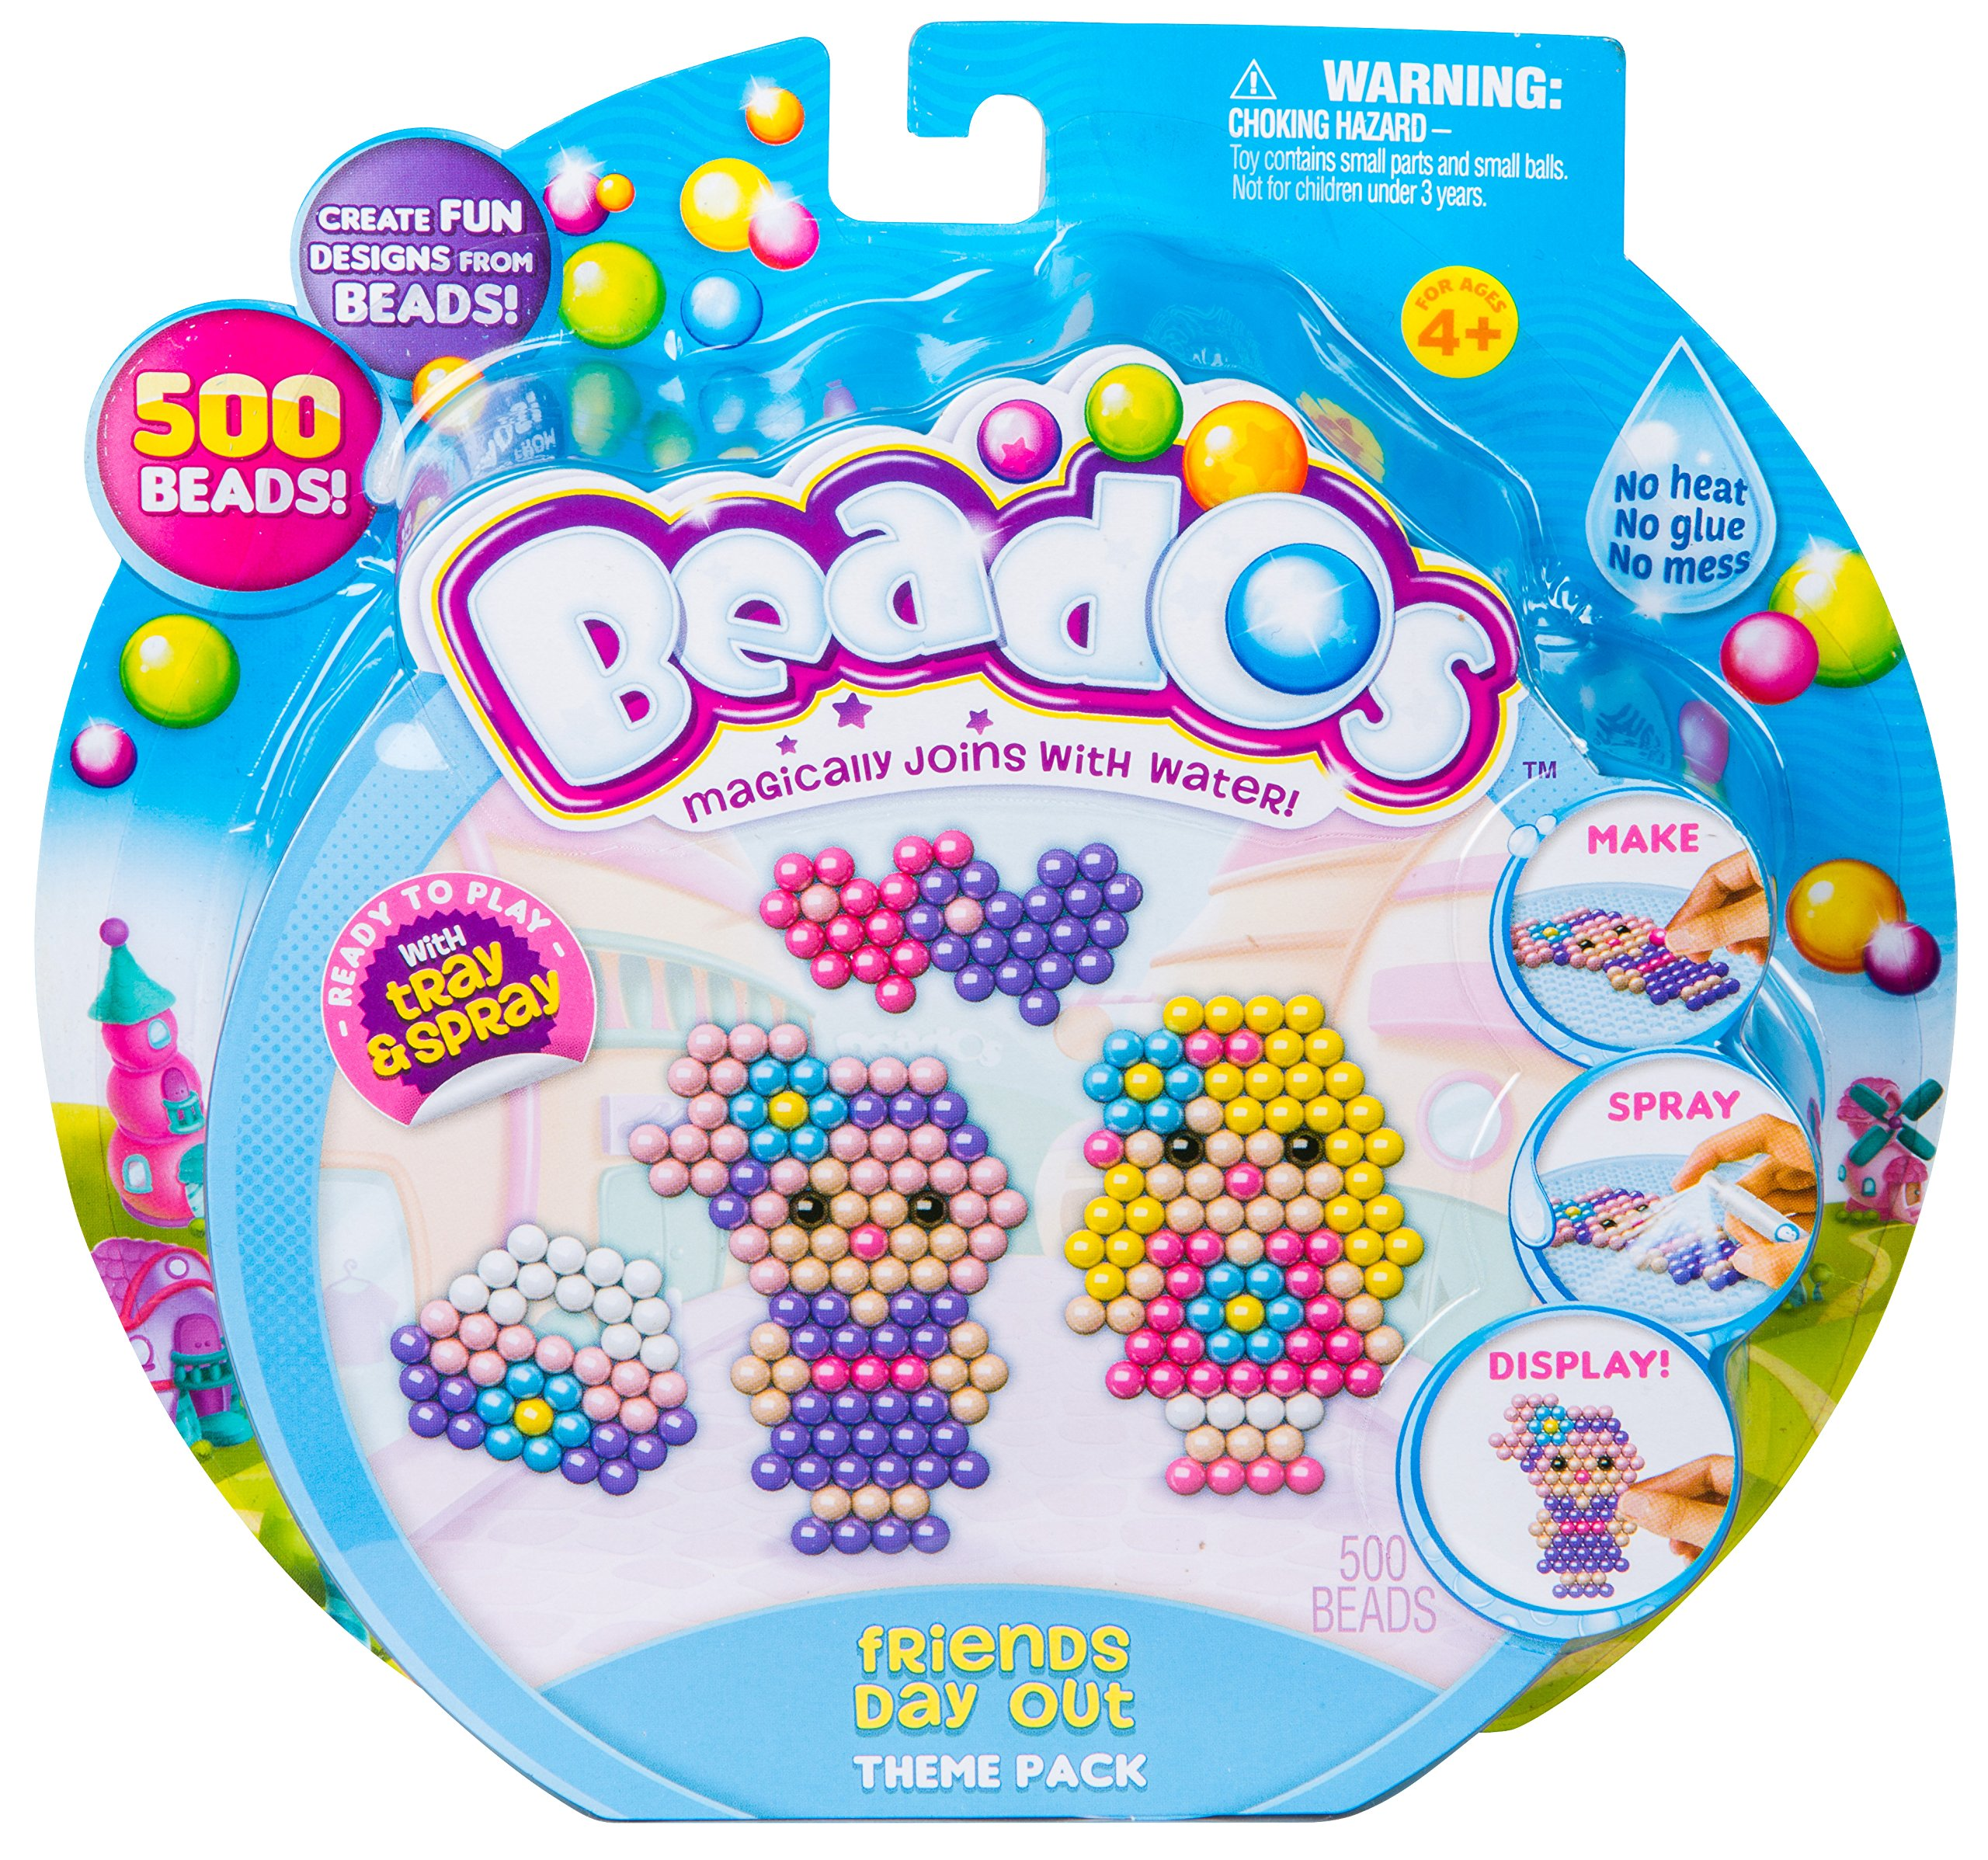 Beados Season 6 Theme Pack - Friends Day Out